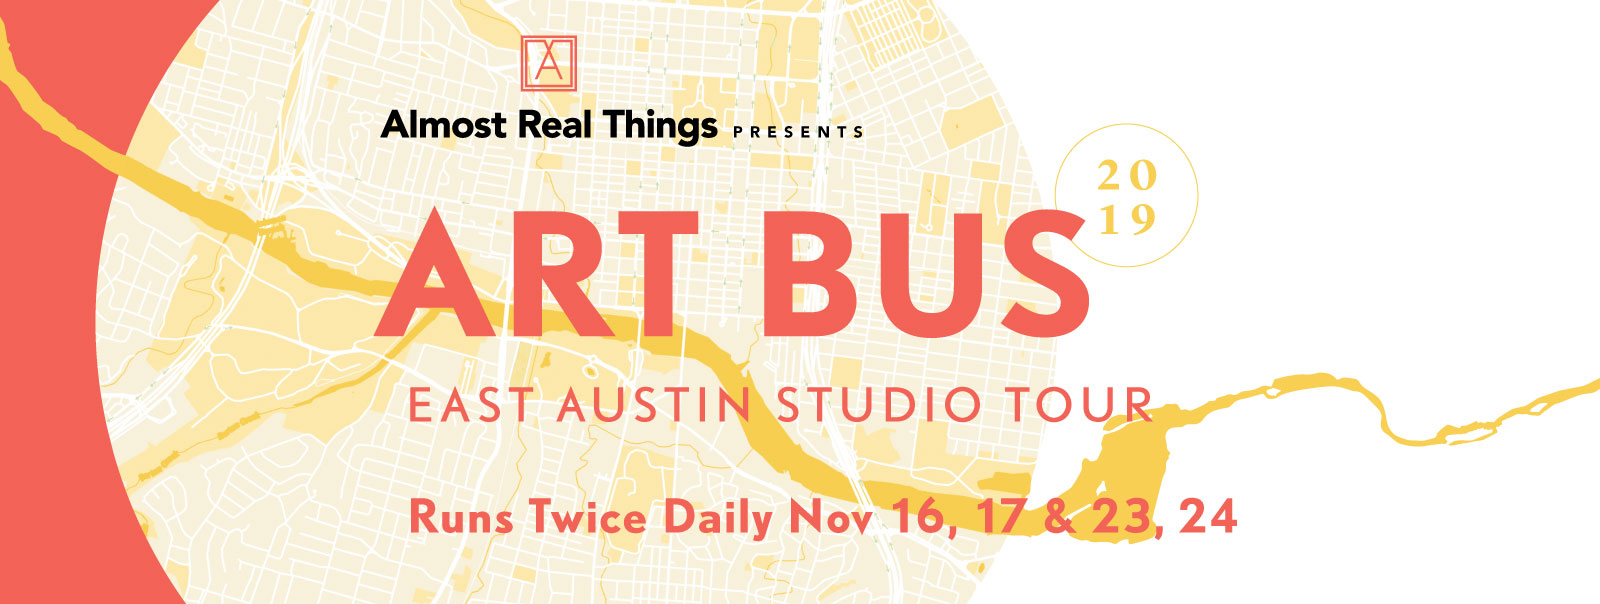 ART BUS Tour for EAST 2019 East Austin Studio Tour in Austin, Texas: November 16, 17 & 23, 24